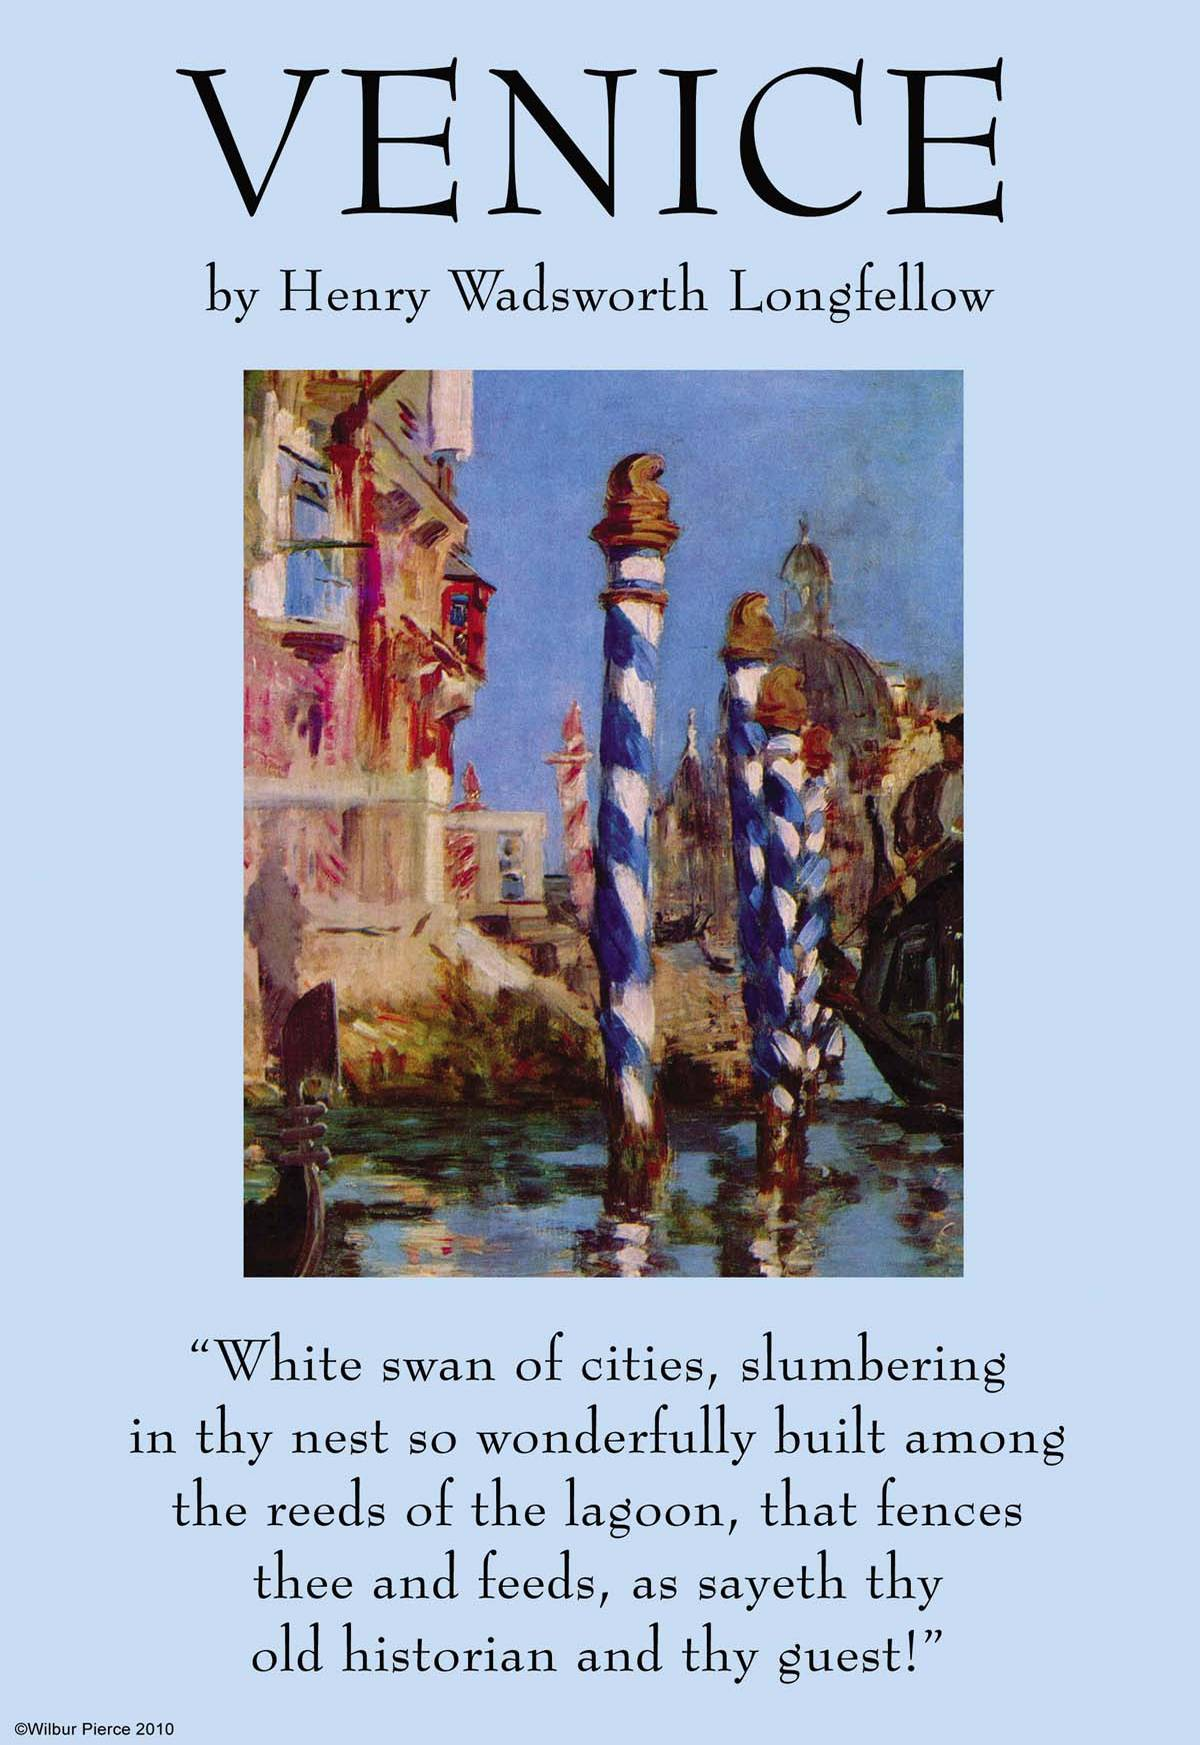 venice posters and canvas art prints vintage book covers